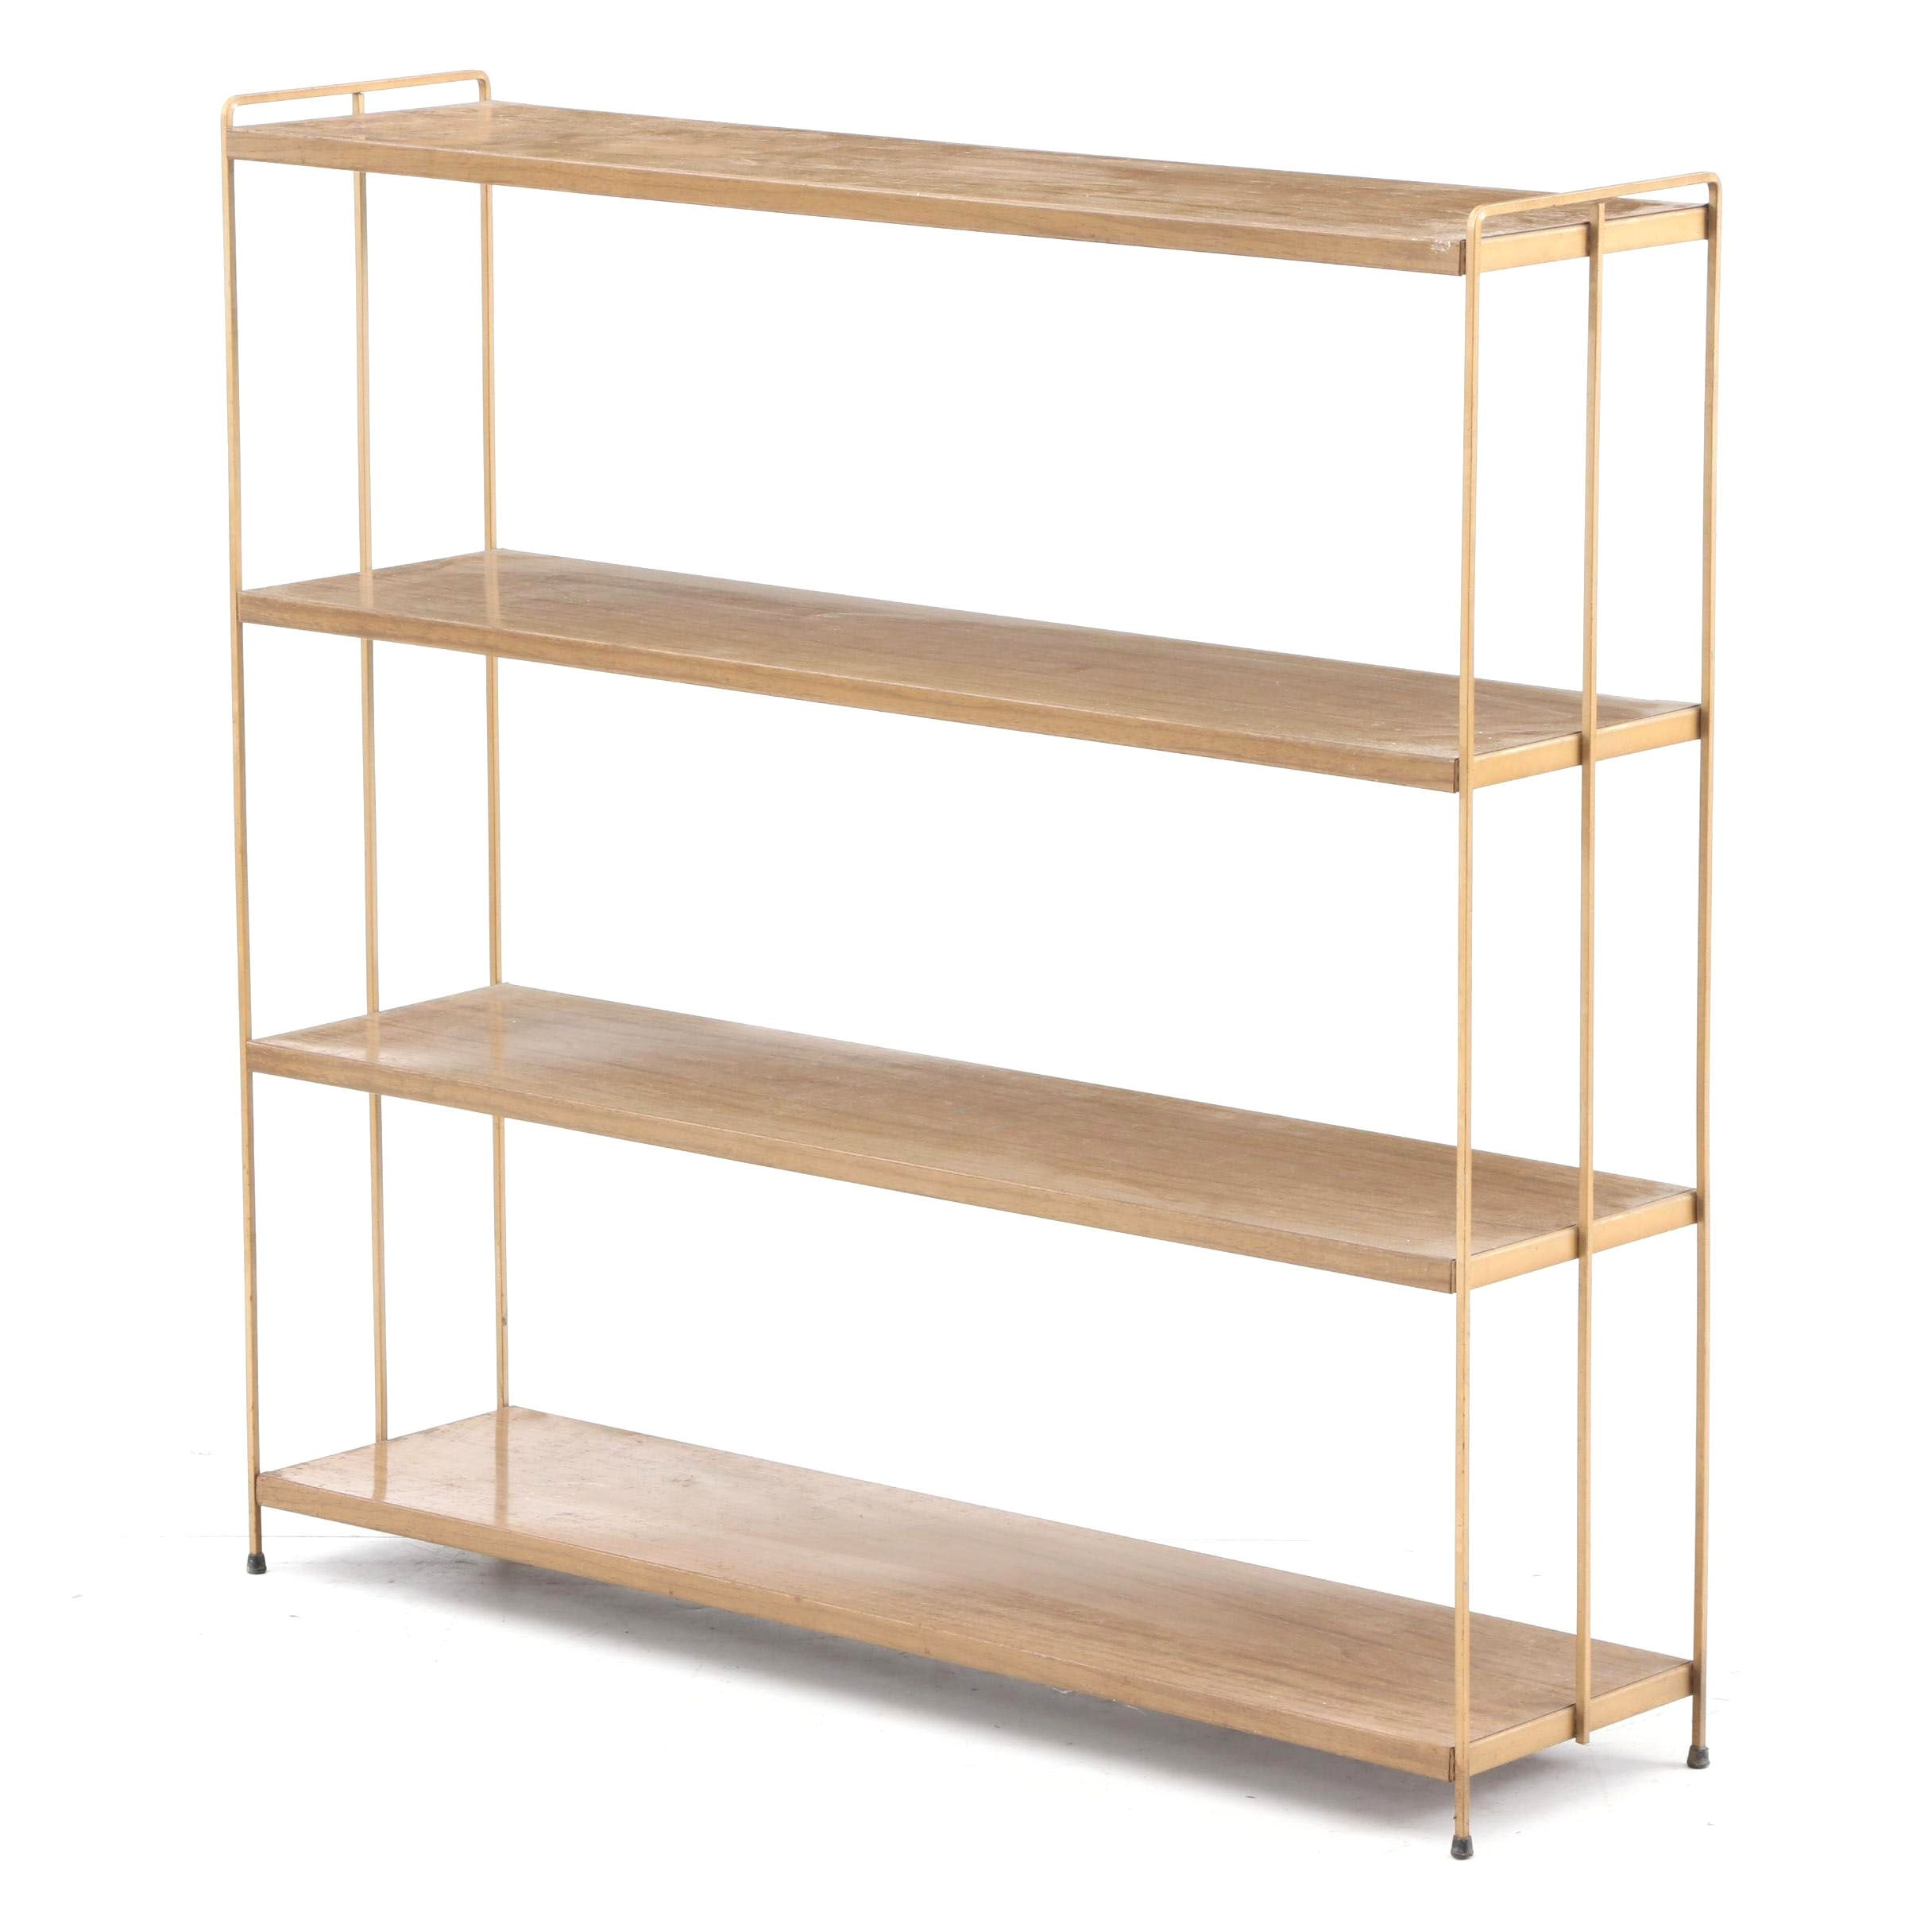 Wood and Metal Shelving Unit, Mid-20th Century